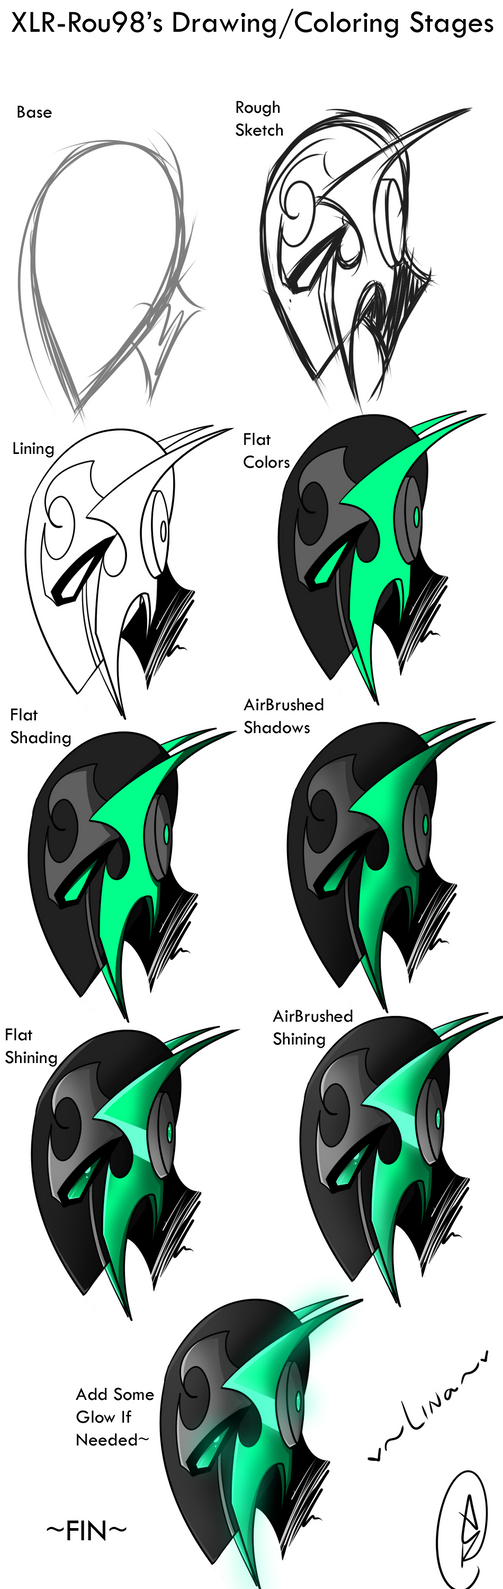 XLR-Rou98's Drawing/Coloring Tutorial by Neutral-Rou